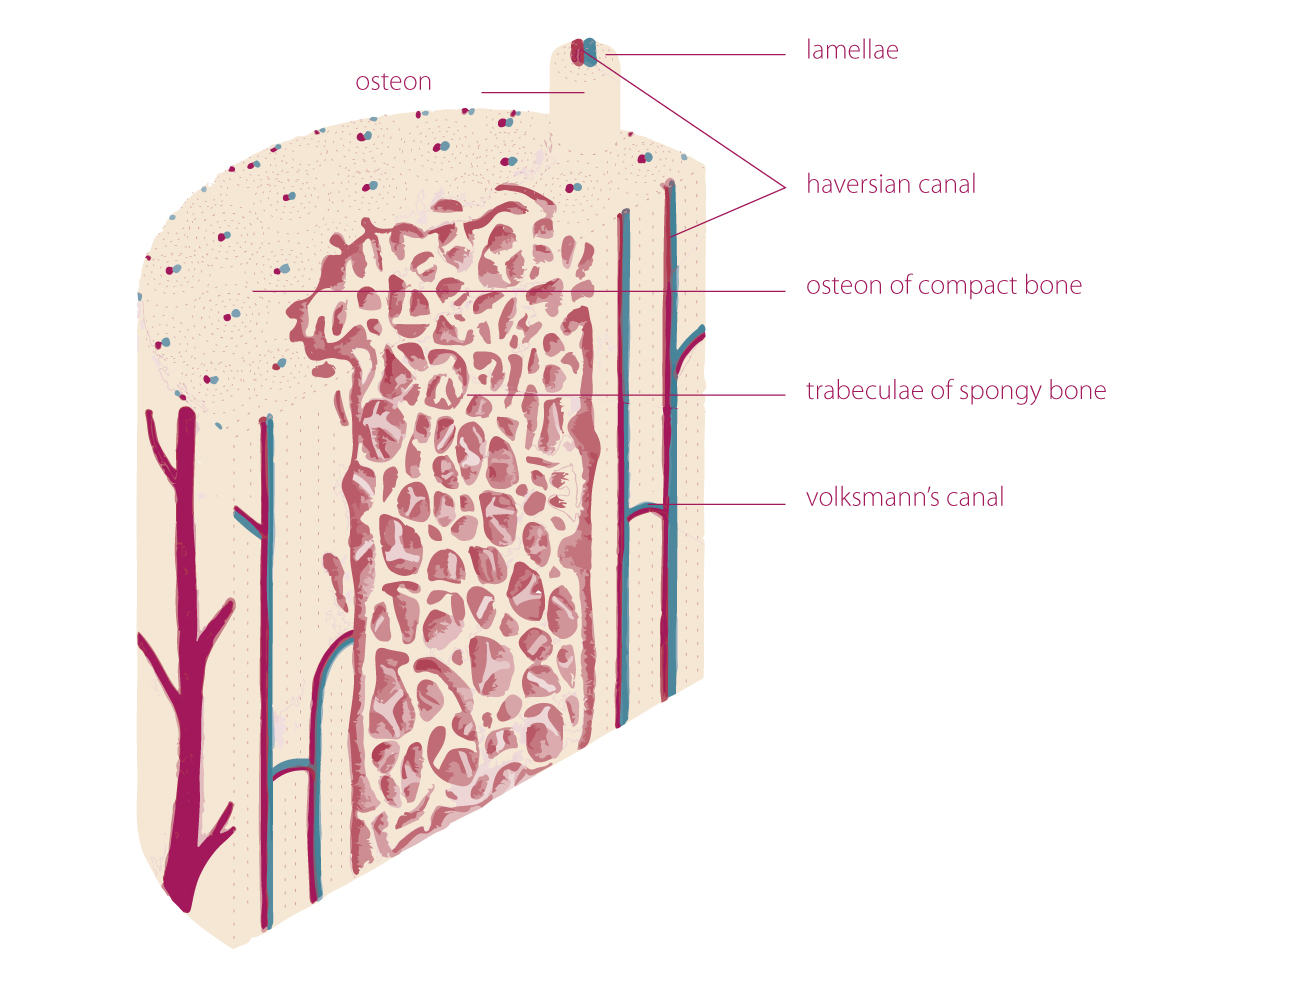 bone anatomy tobigendosteum and periosteum 1,4,5 the periosteum is a double layered membrane surrounds the external surface of the bone except for the joints surfaces 1 2